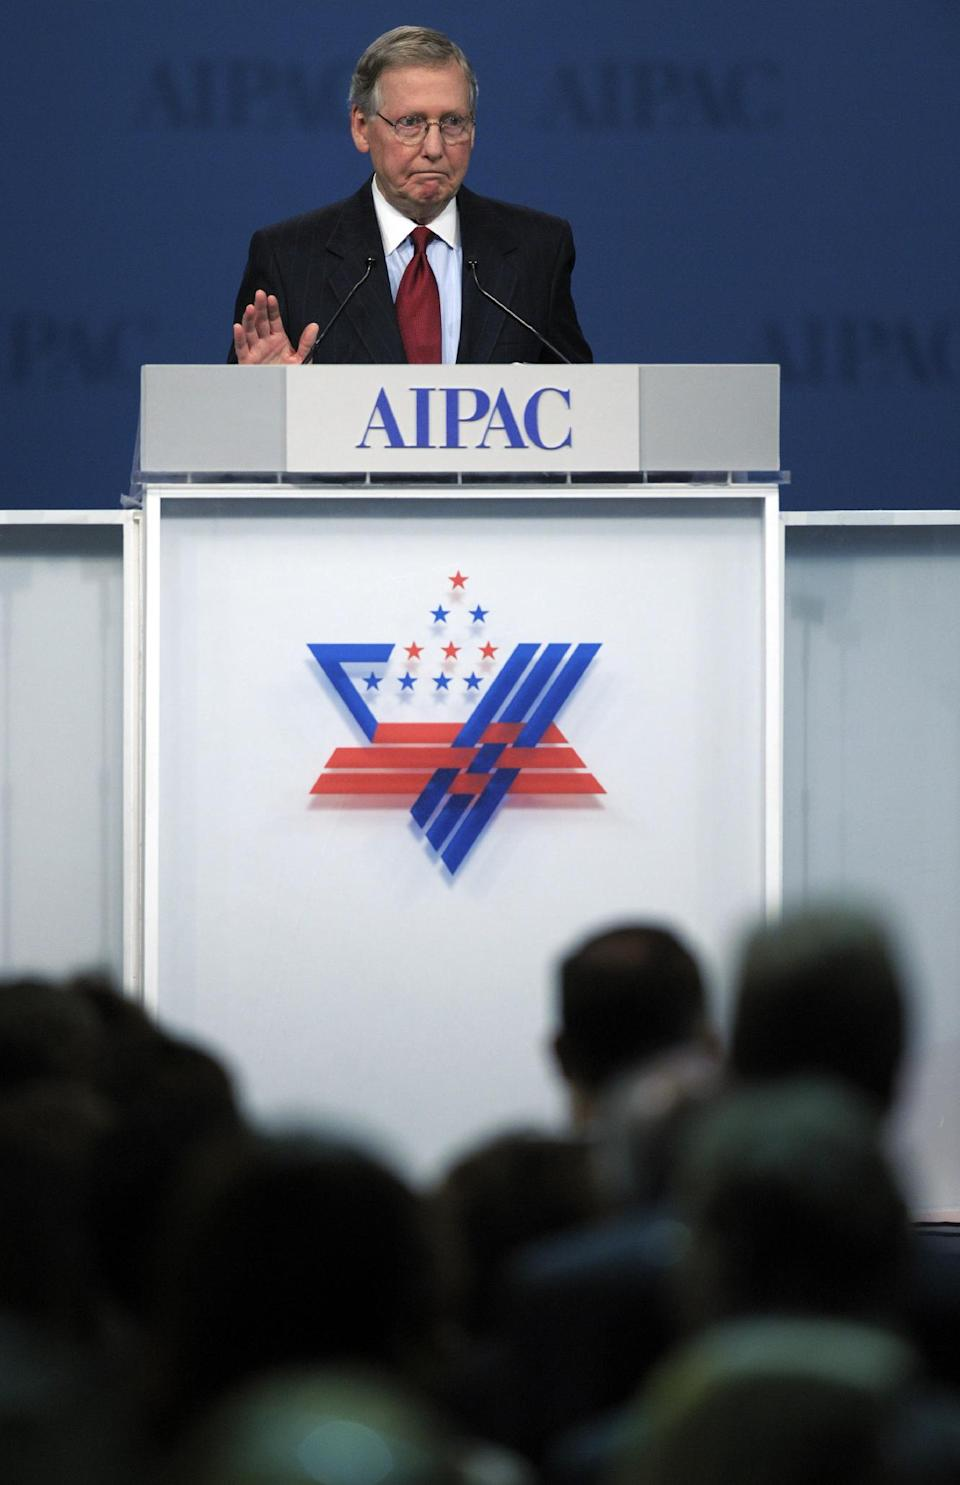 Senate Minority Leader Mitch McConnell, R-Ky., reacts to a standing ovation as he addresses the American Israel Public Affairs Committee (AIPAC) Policy Conference opening plenary session in Washington, Monday, March 5, 2012. (AP Photo/Cliff Owen)